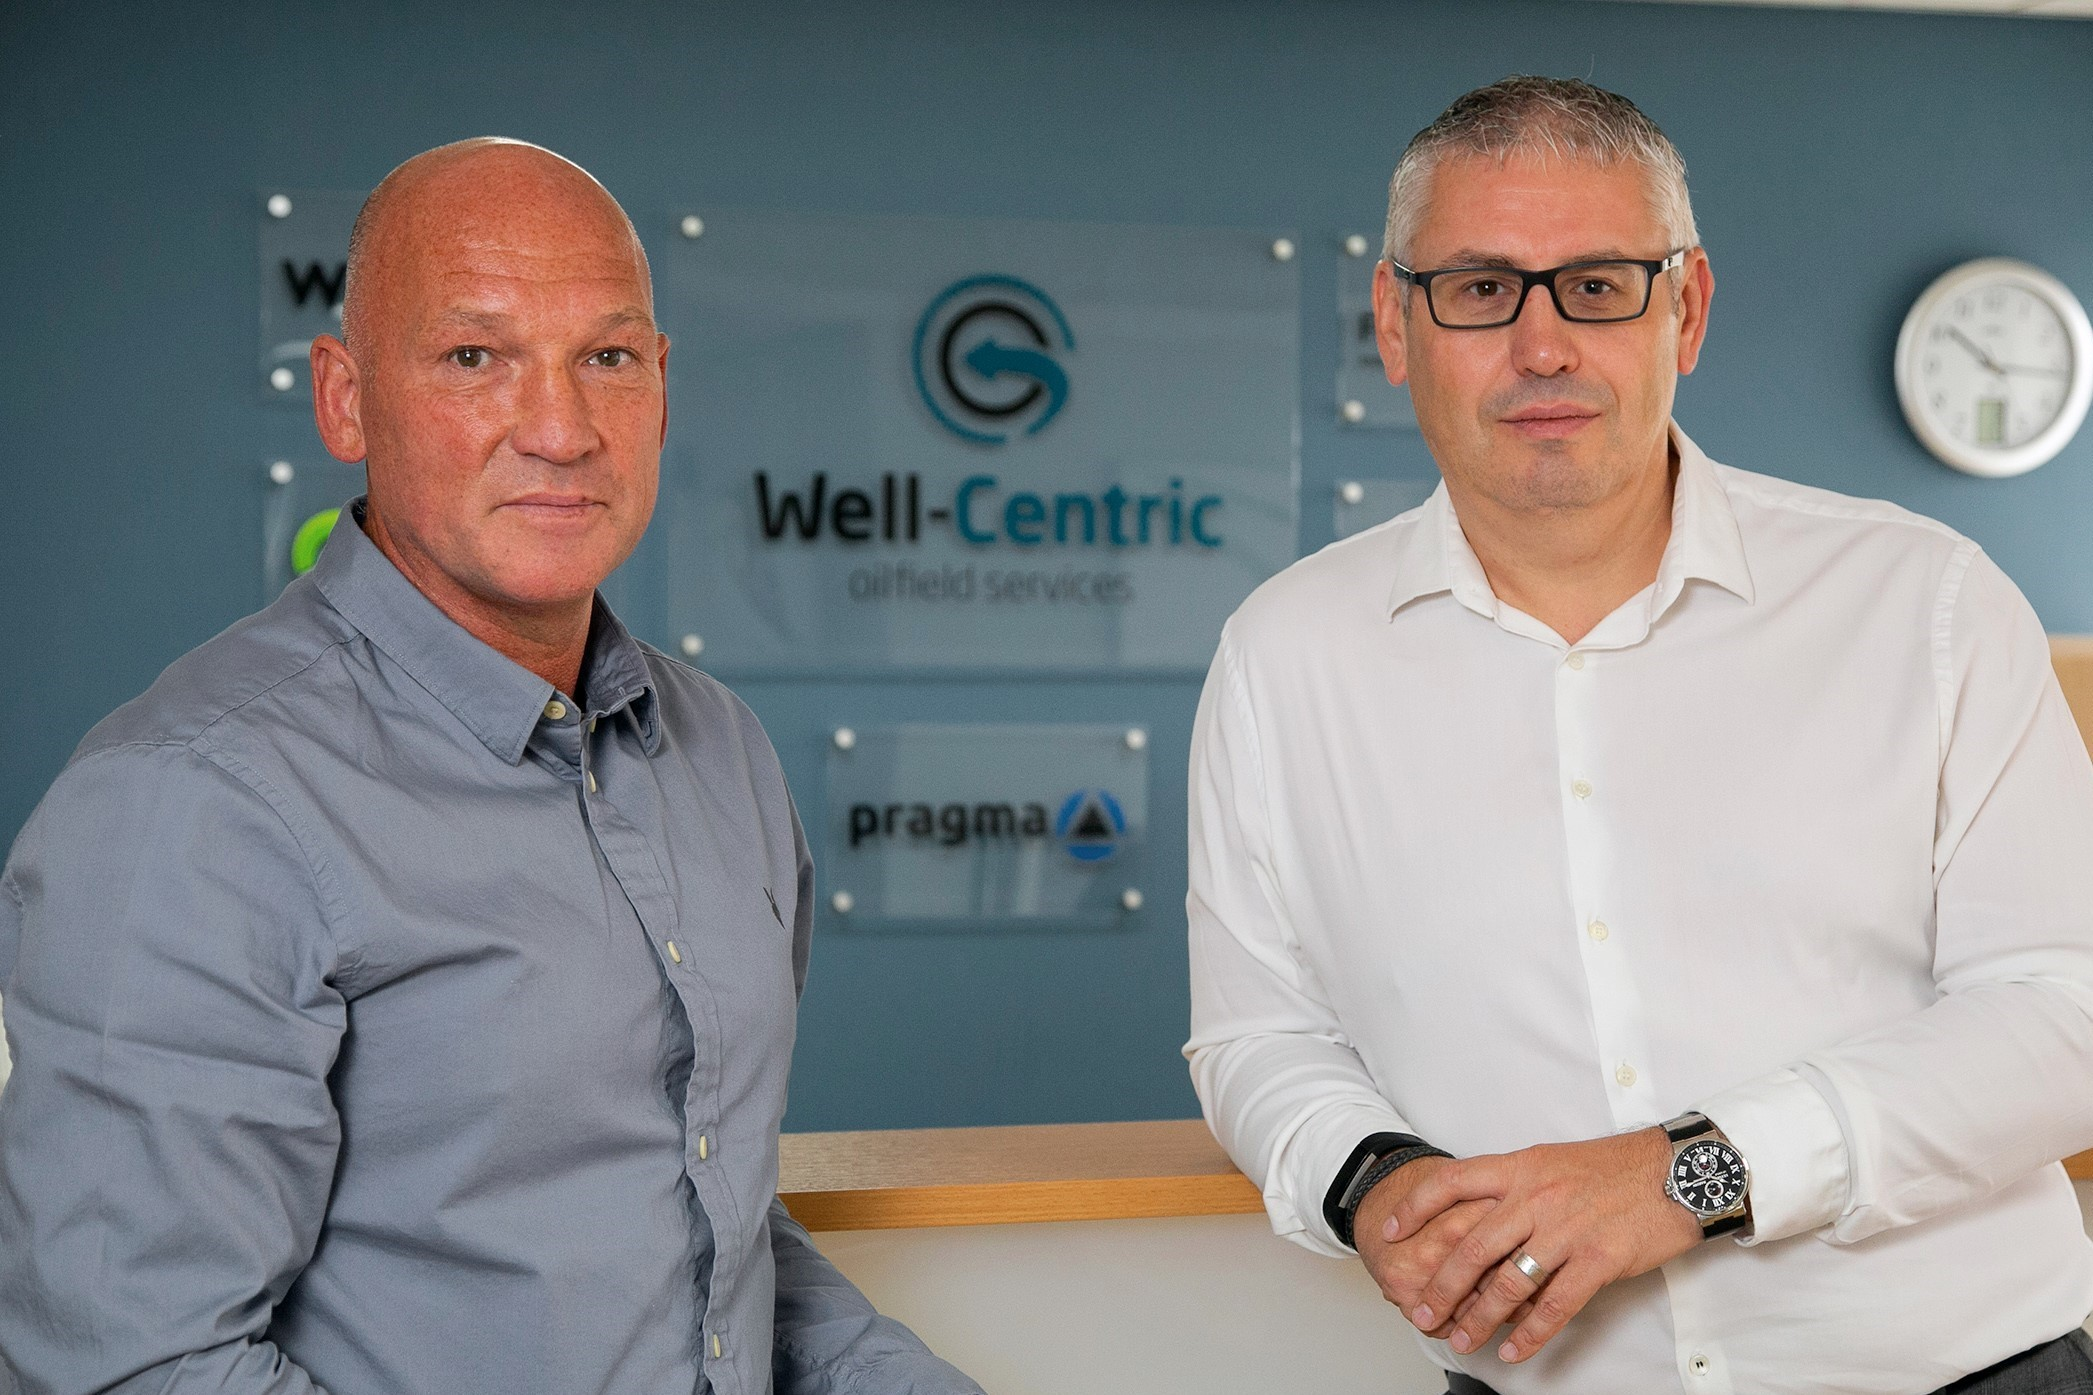 Malcolm Adam and Gary Smart of Well-Centric.